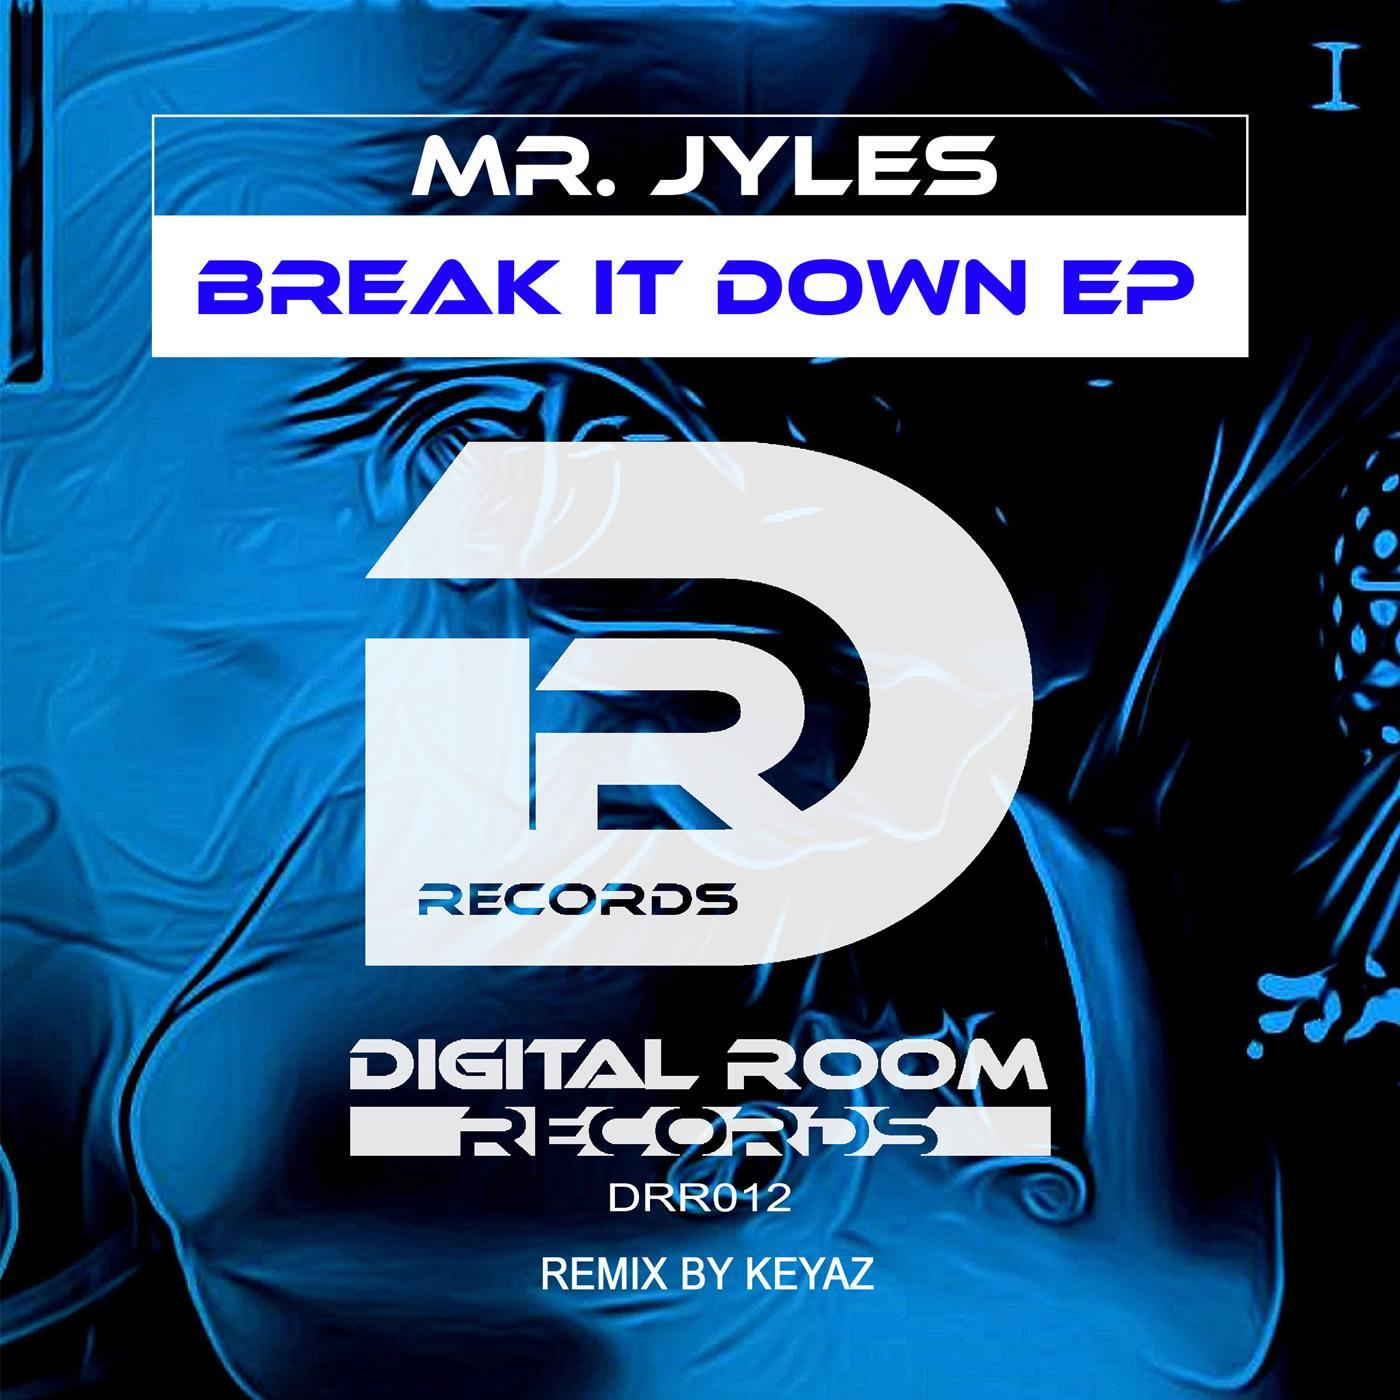 Break it down (KeyaZ Remix)